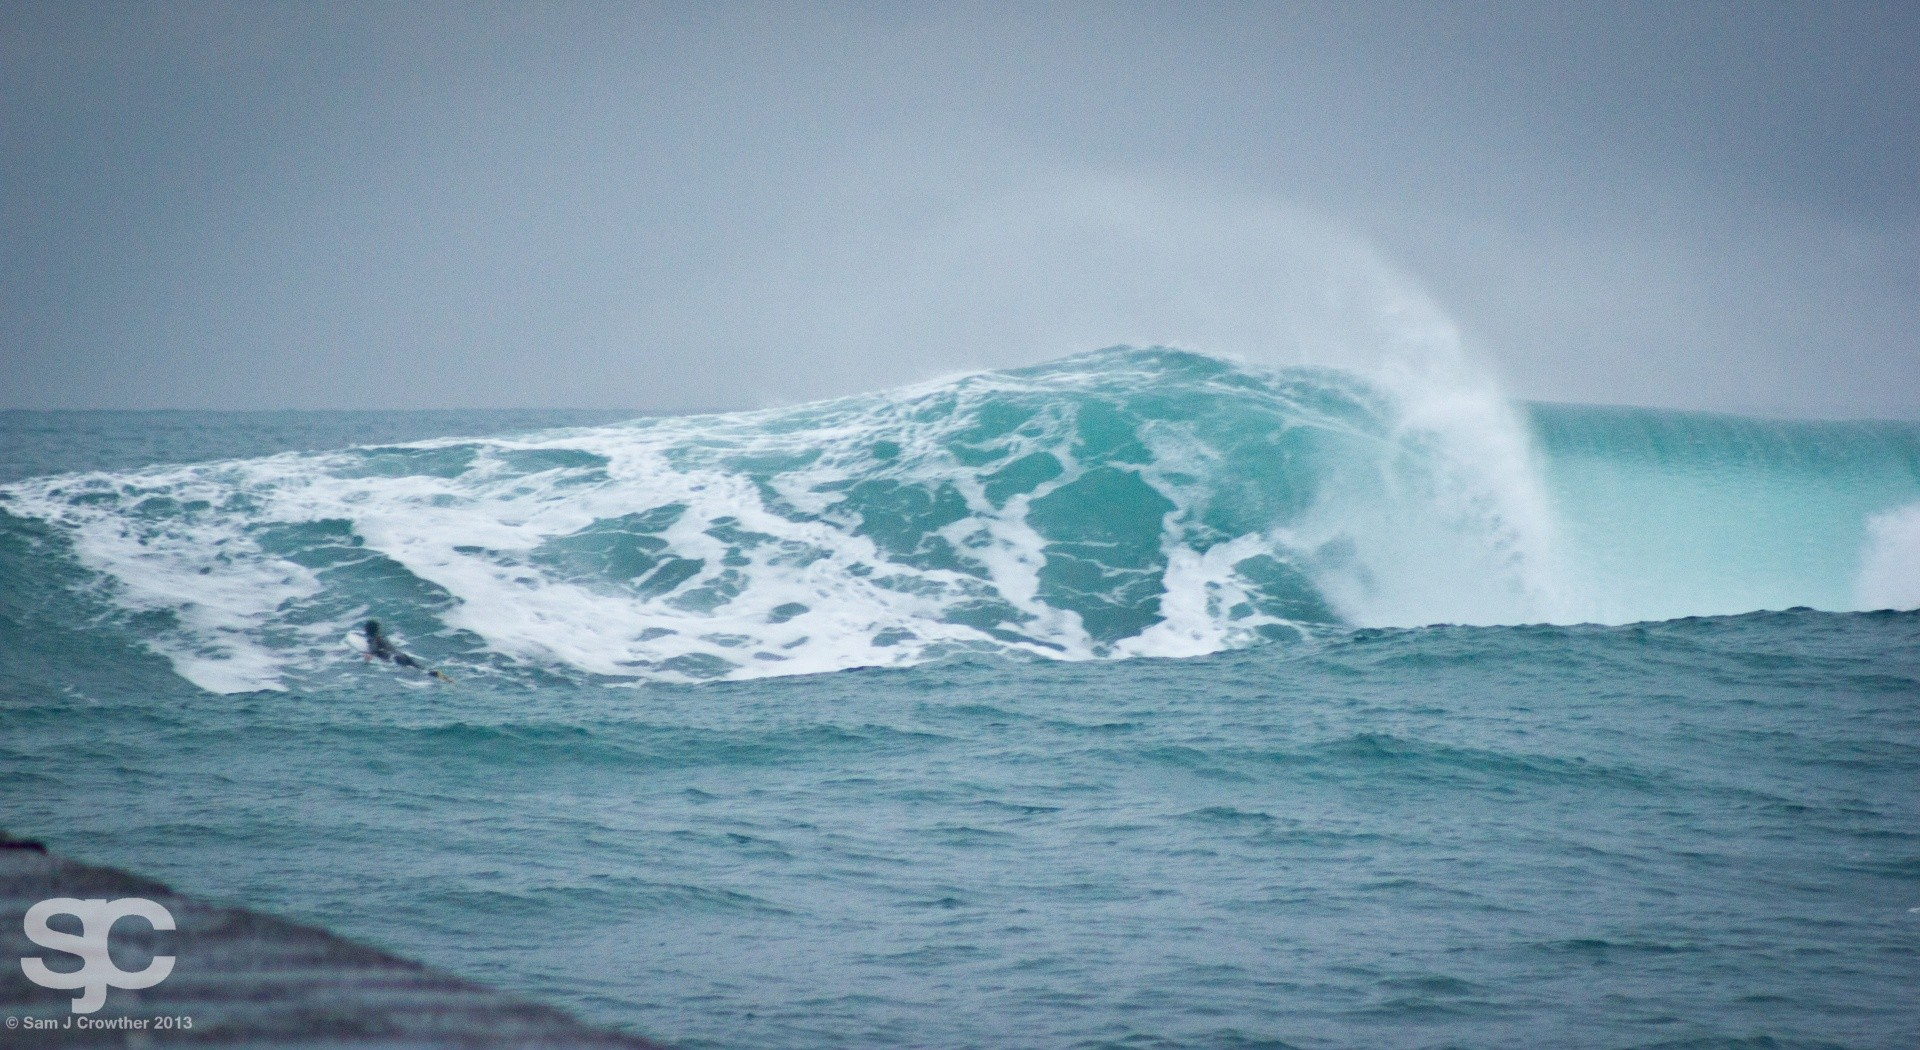 Sam Crowther's photo of Porthleven